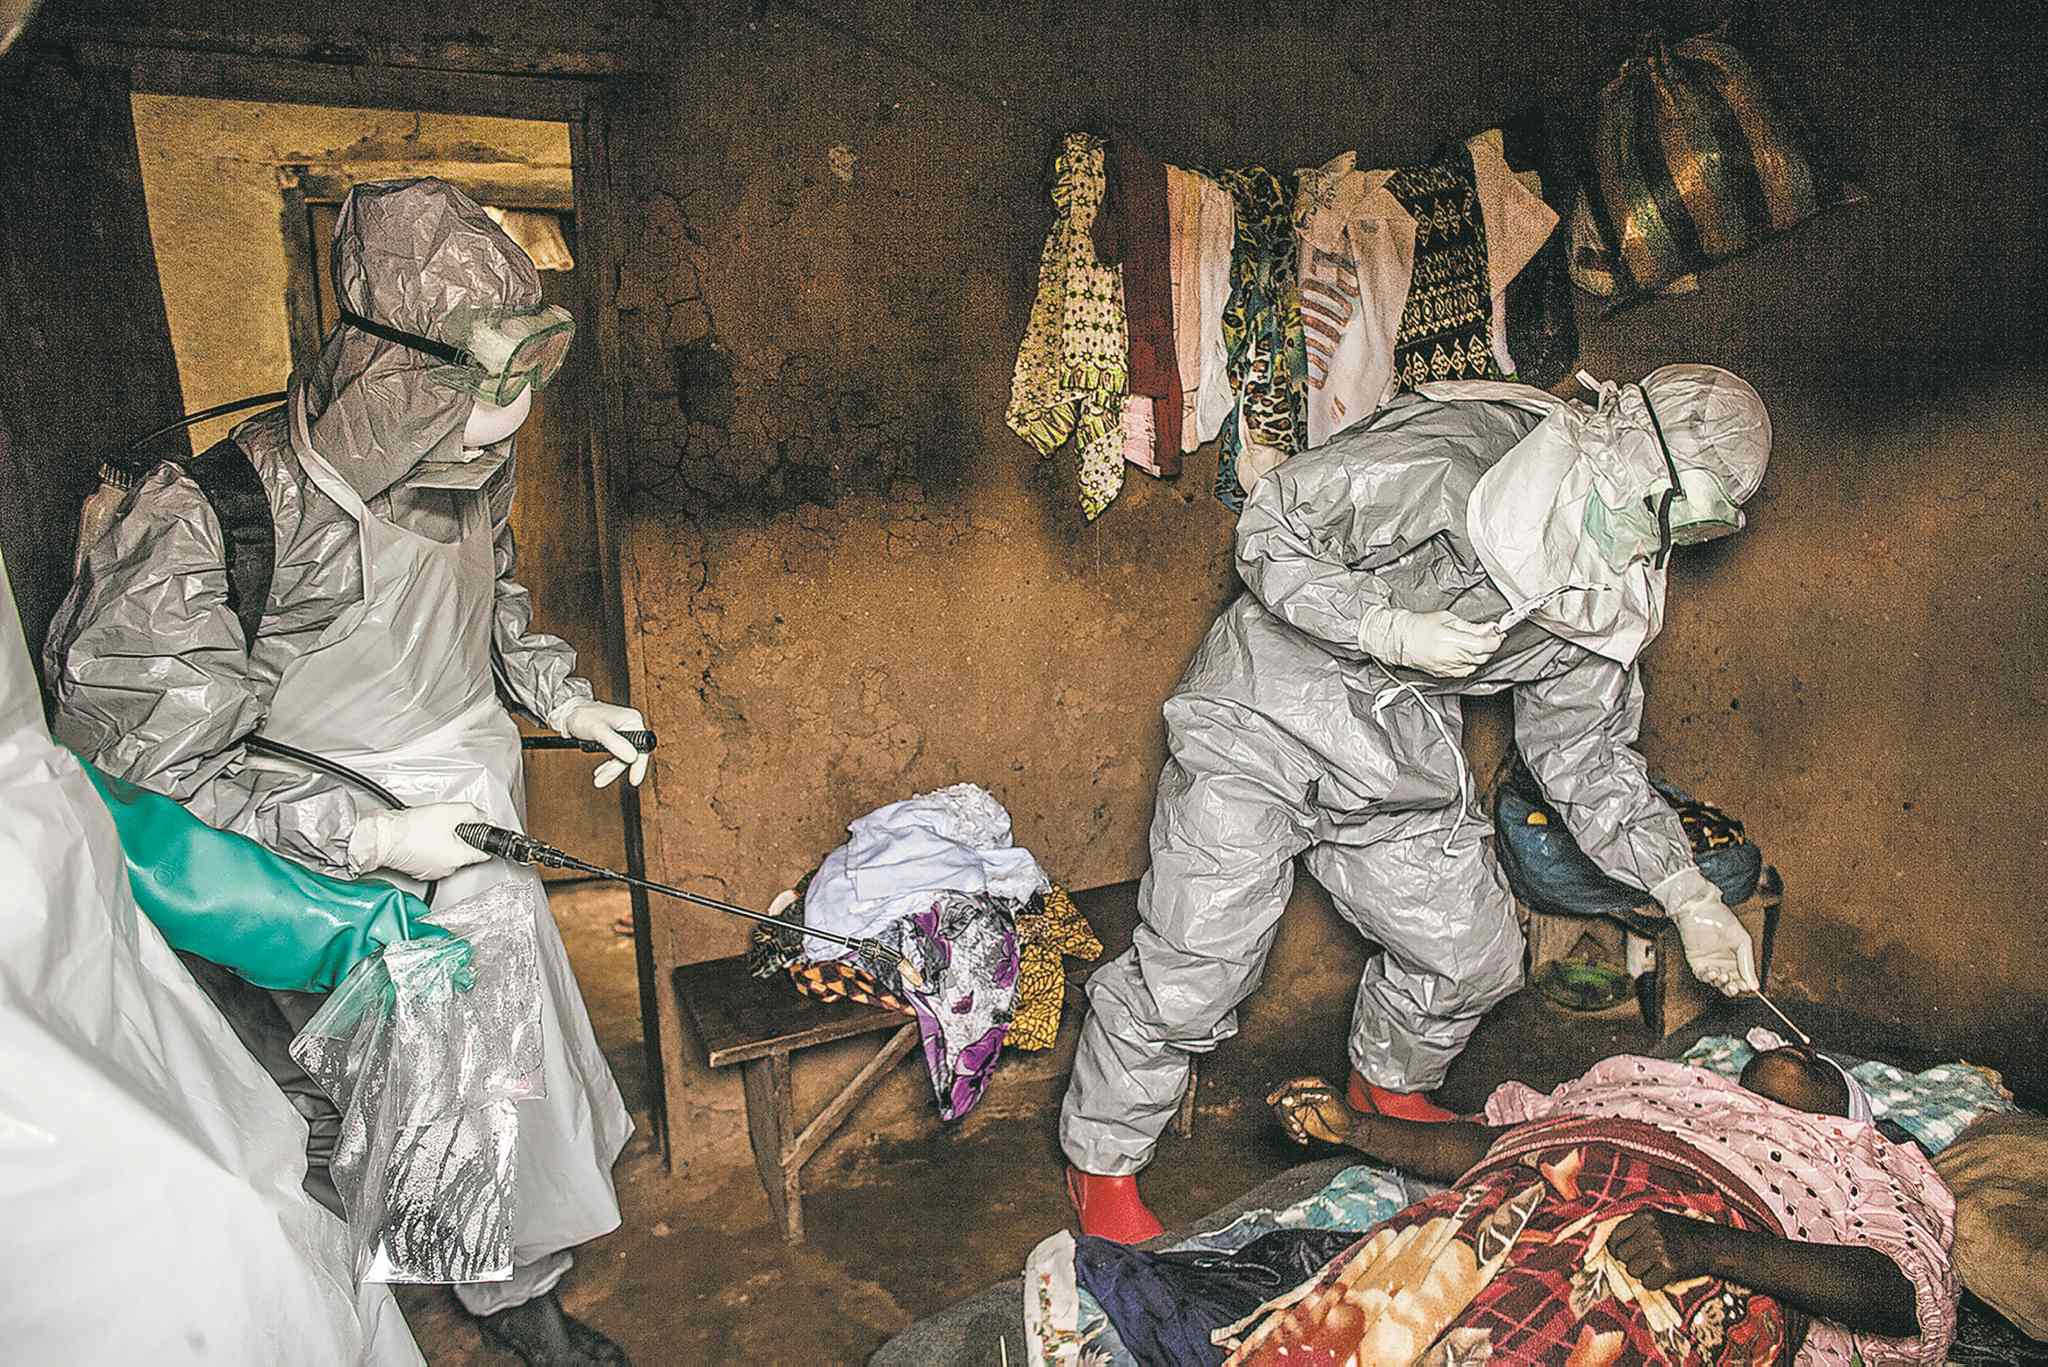 Members of a Red Cross burial team take samples from the body of a woman they suspect died of Ebola in the village of Dia, Sierra Leone.